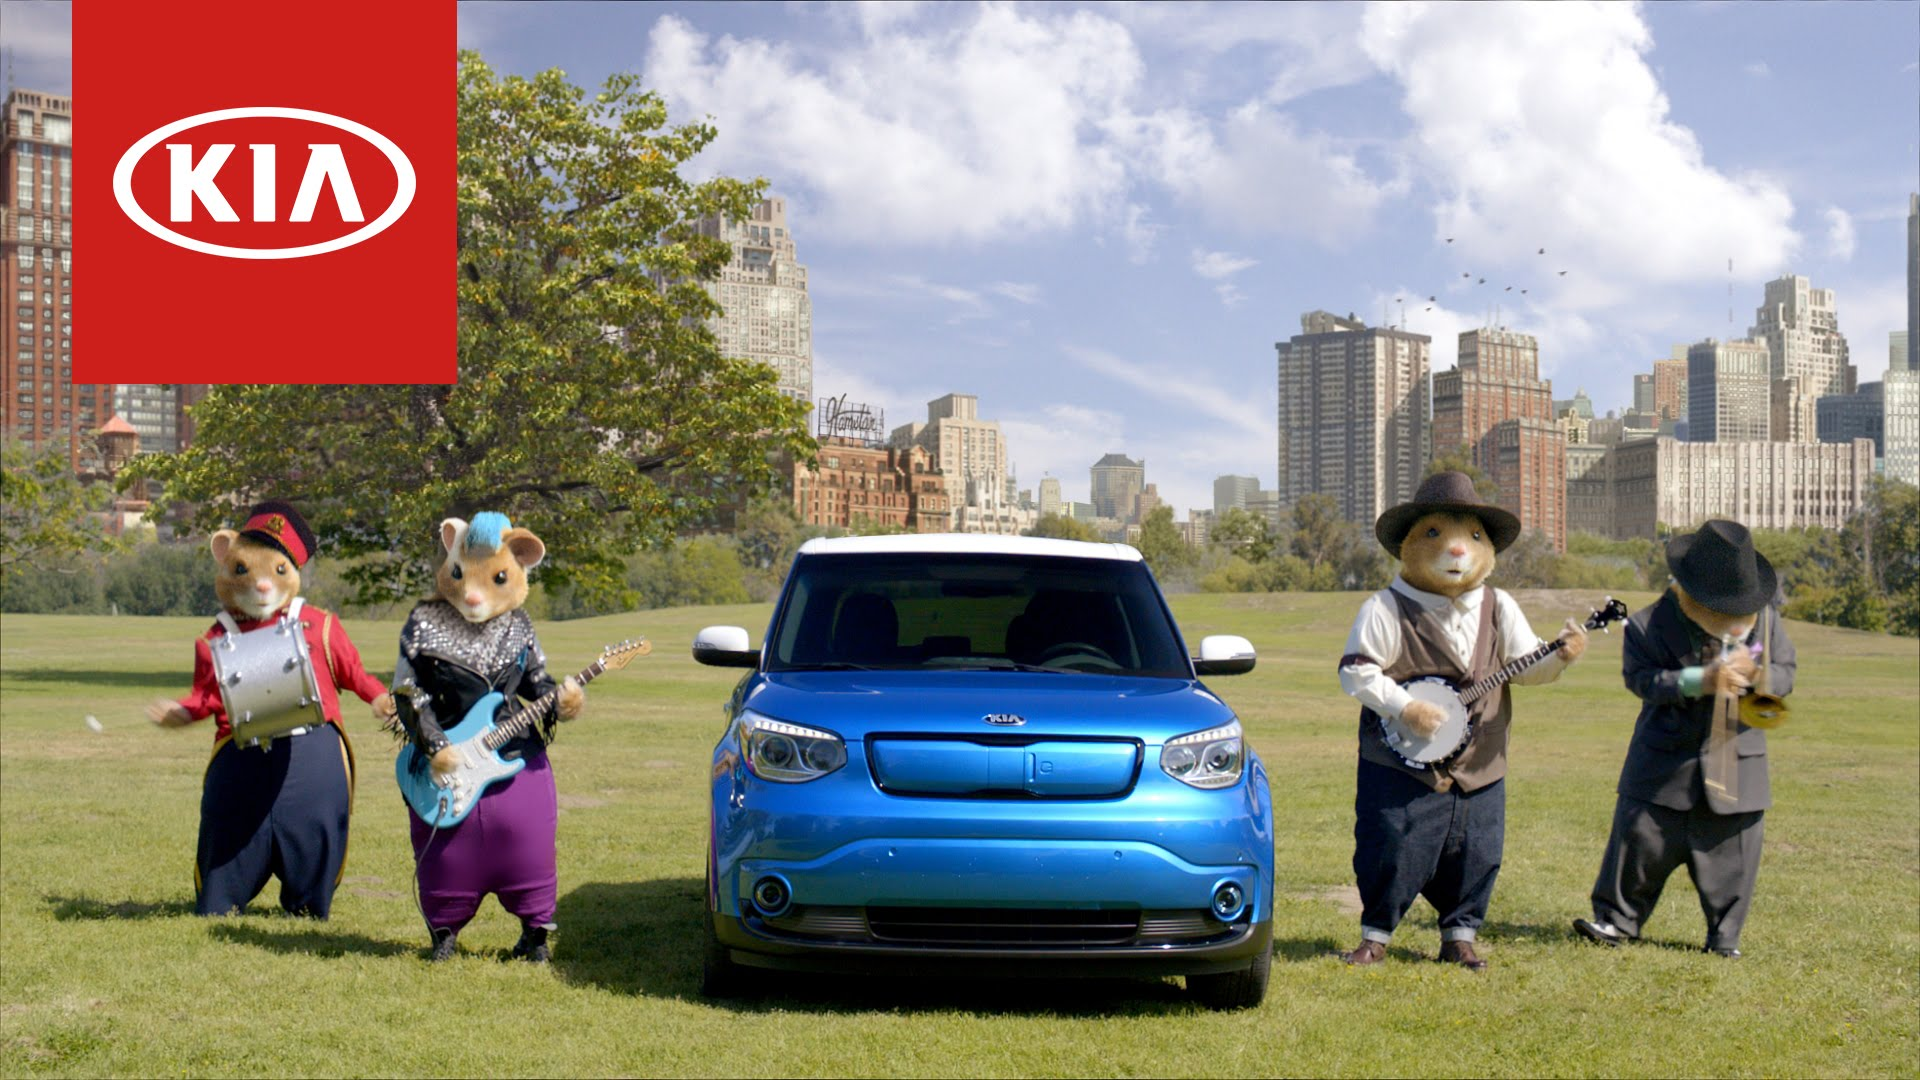 Kia Soul Commercial >> Kia Soul Hamster Commercial With Banjos Defines What A Hipster Car